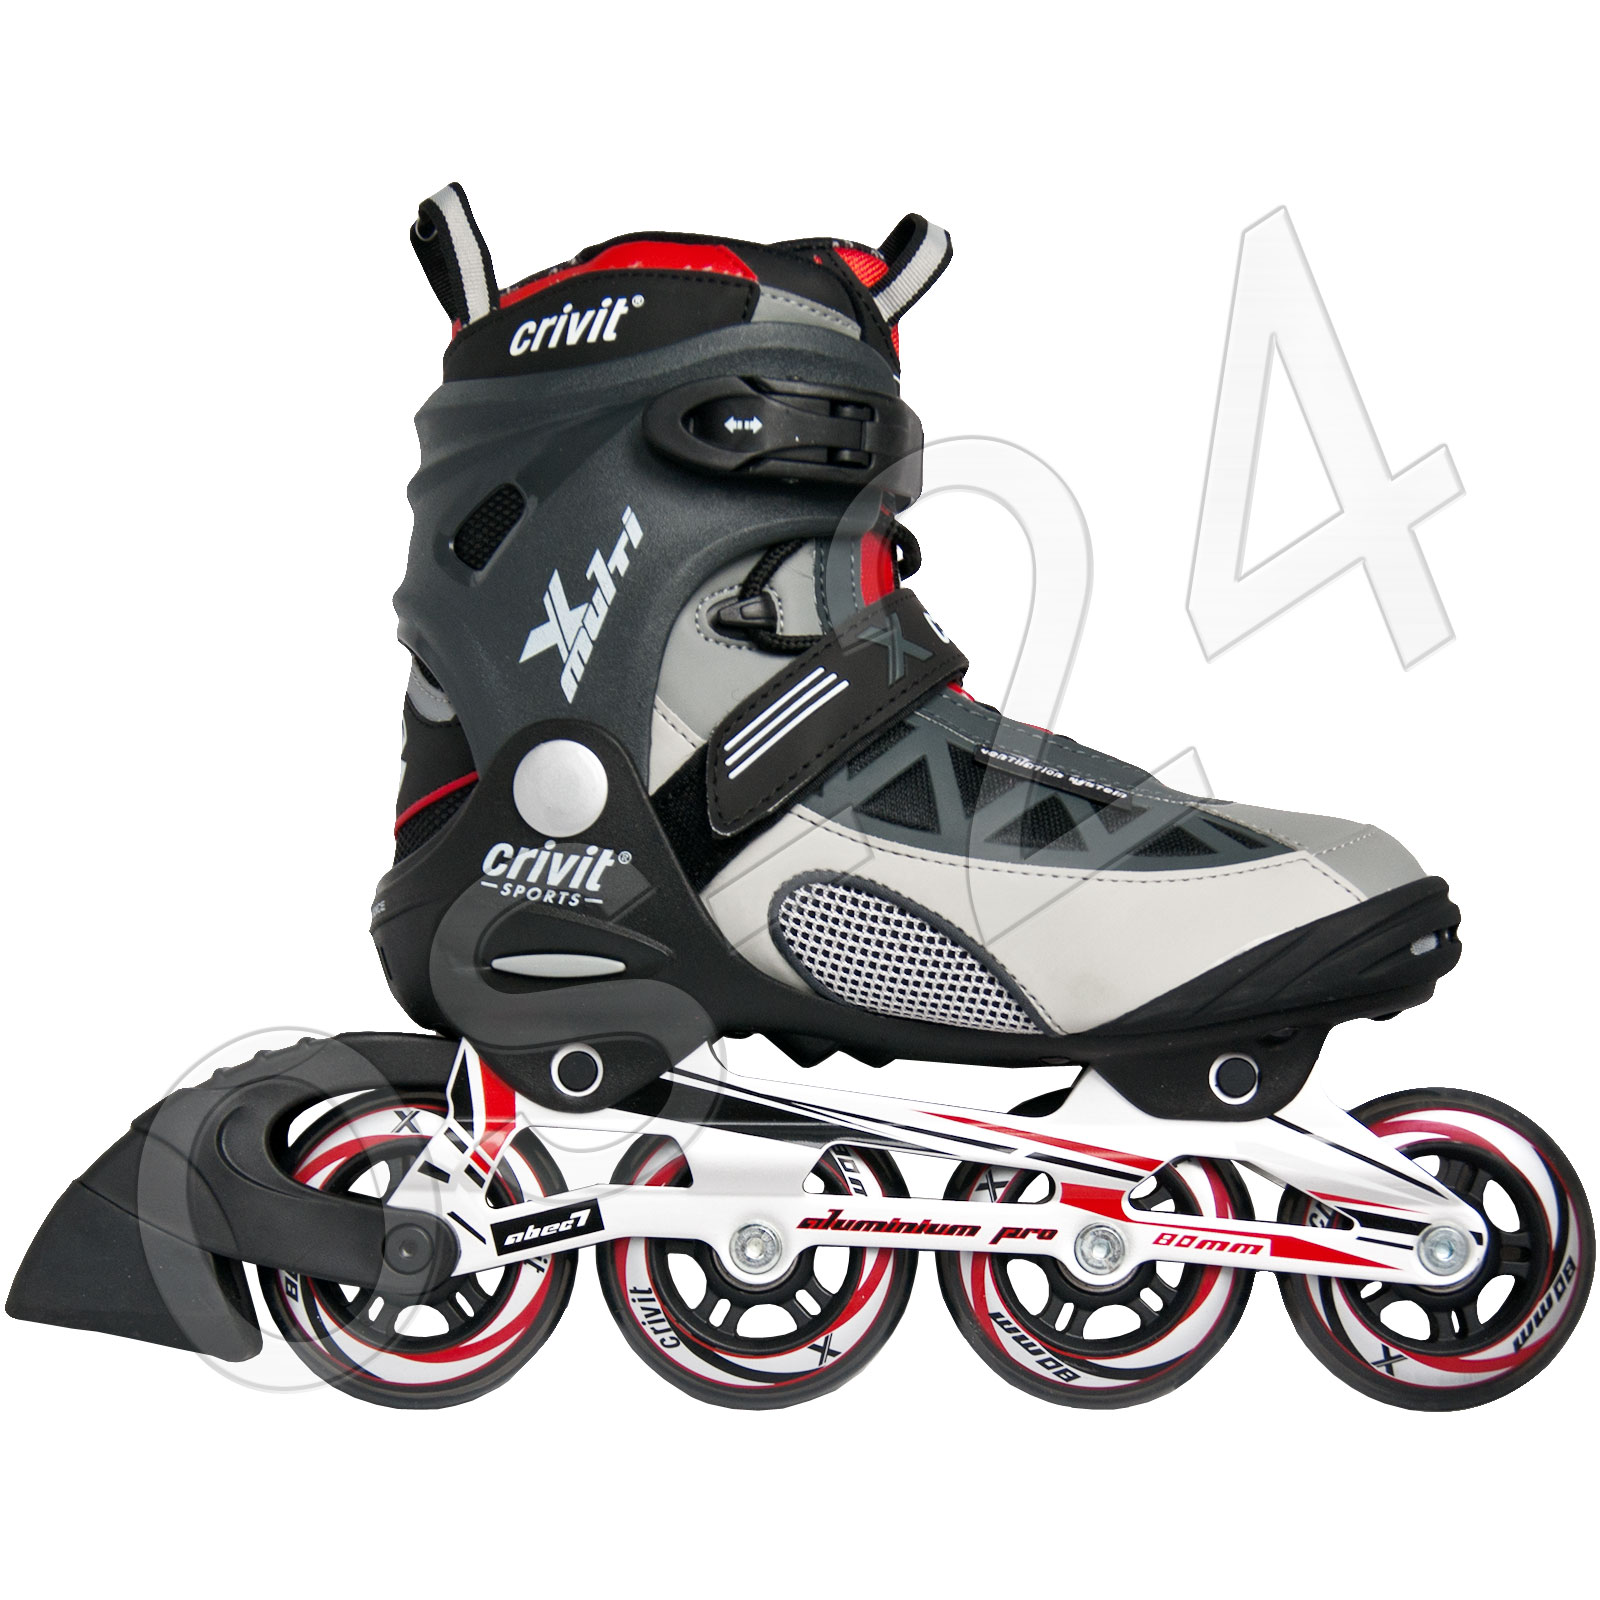 damen inliner rollerskates inline skates gr e 37 ebay. Black Bedroom Furniture Sets. Home Design Ideas